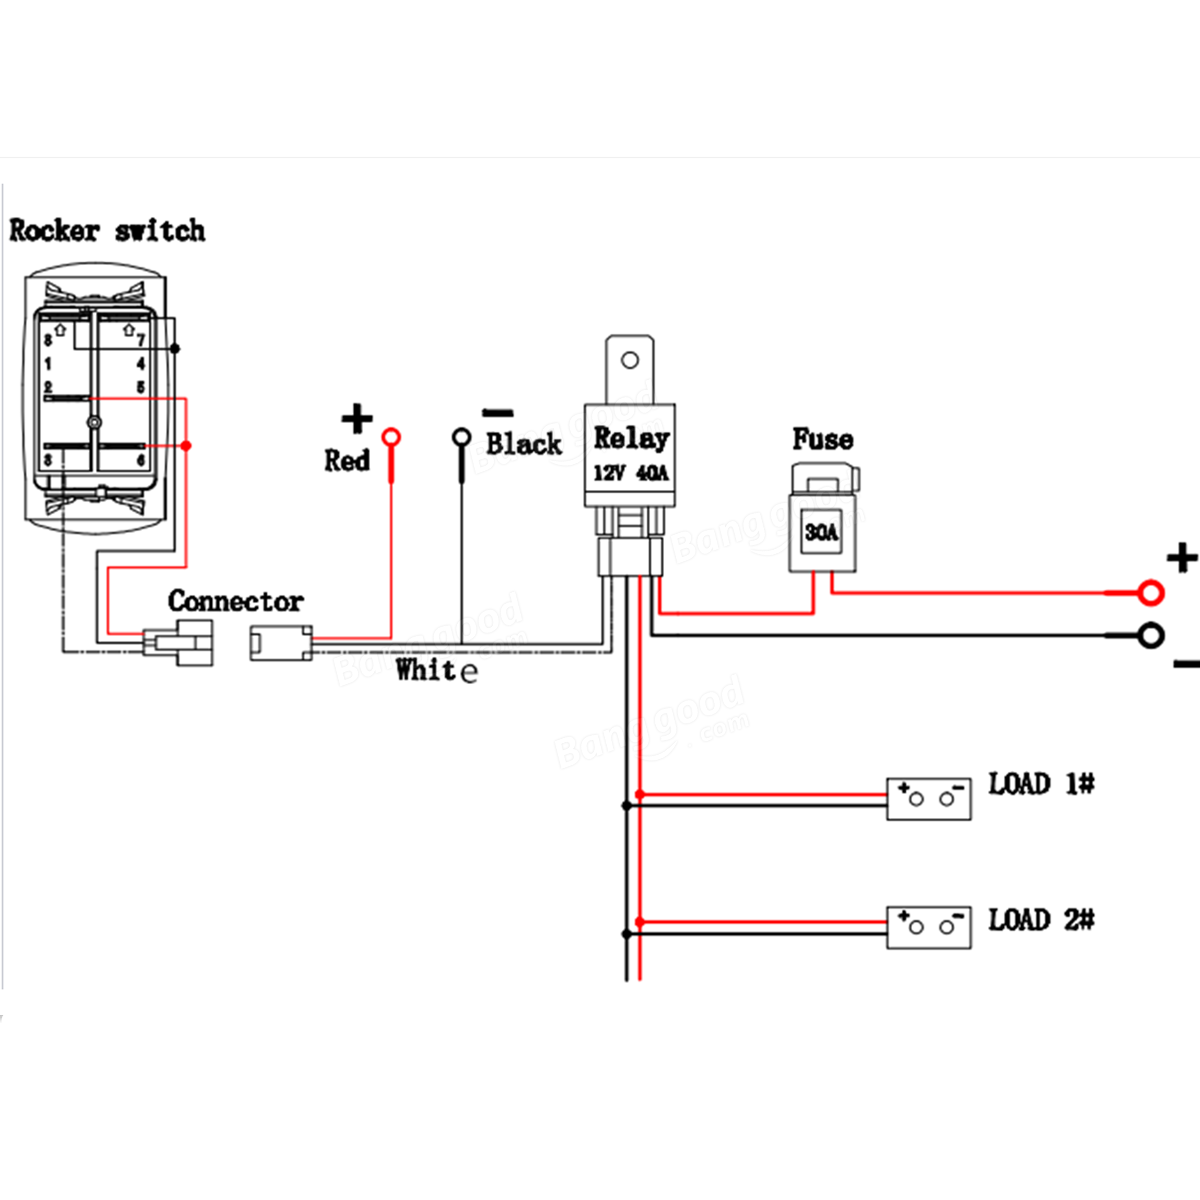 2 2 Way Switch Wiring Diagram For Battery. Wiring. Wiring Diagrams ...